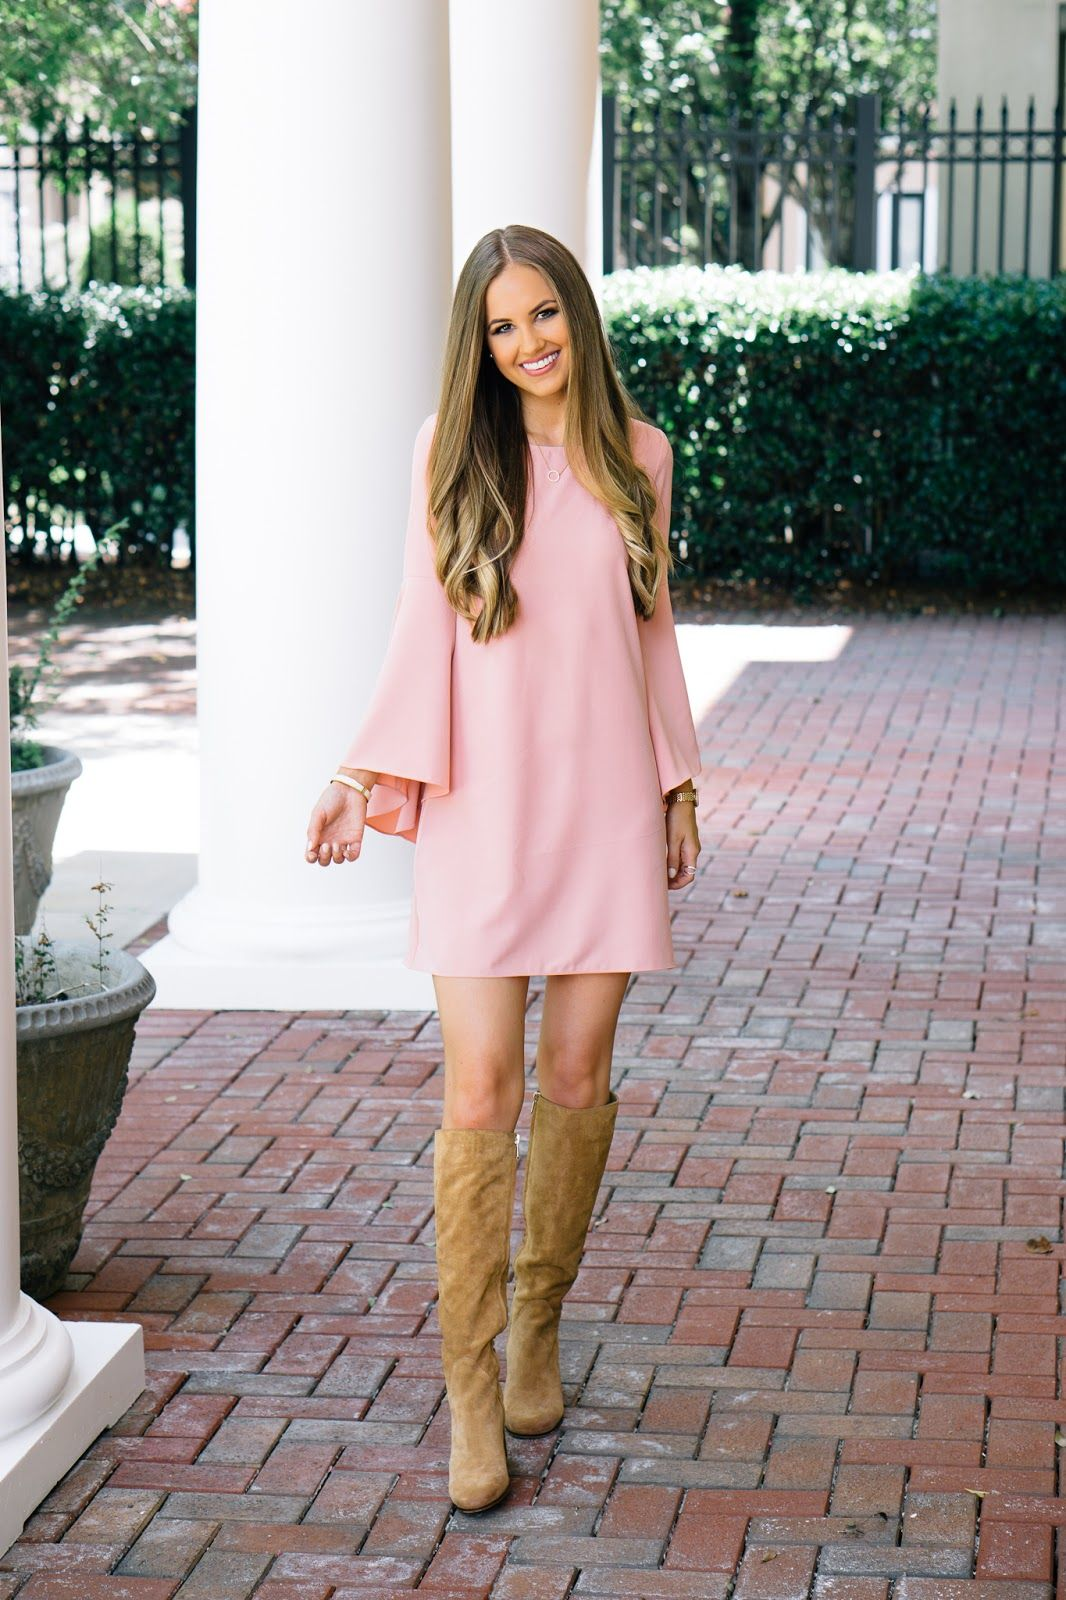 667bff0c5 Fall Fashion Camel Suede Boots www.looklovelyliving.com